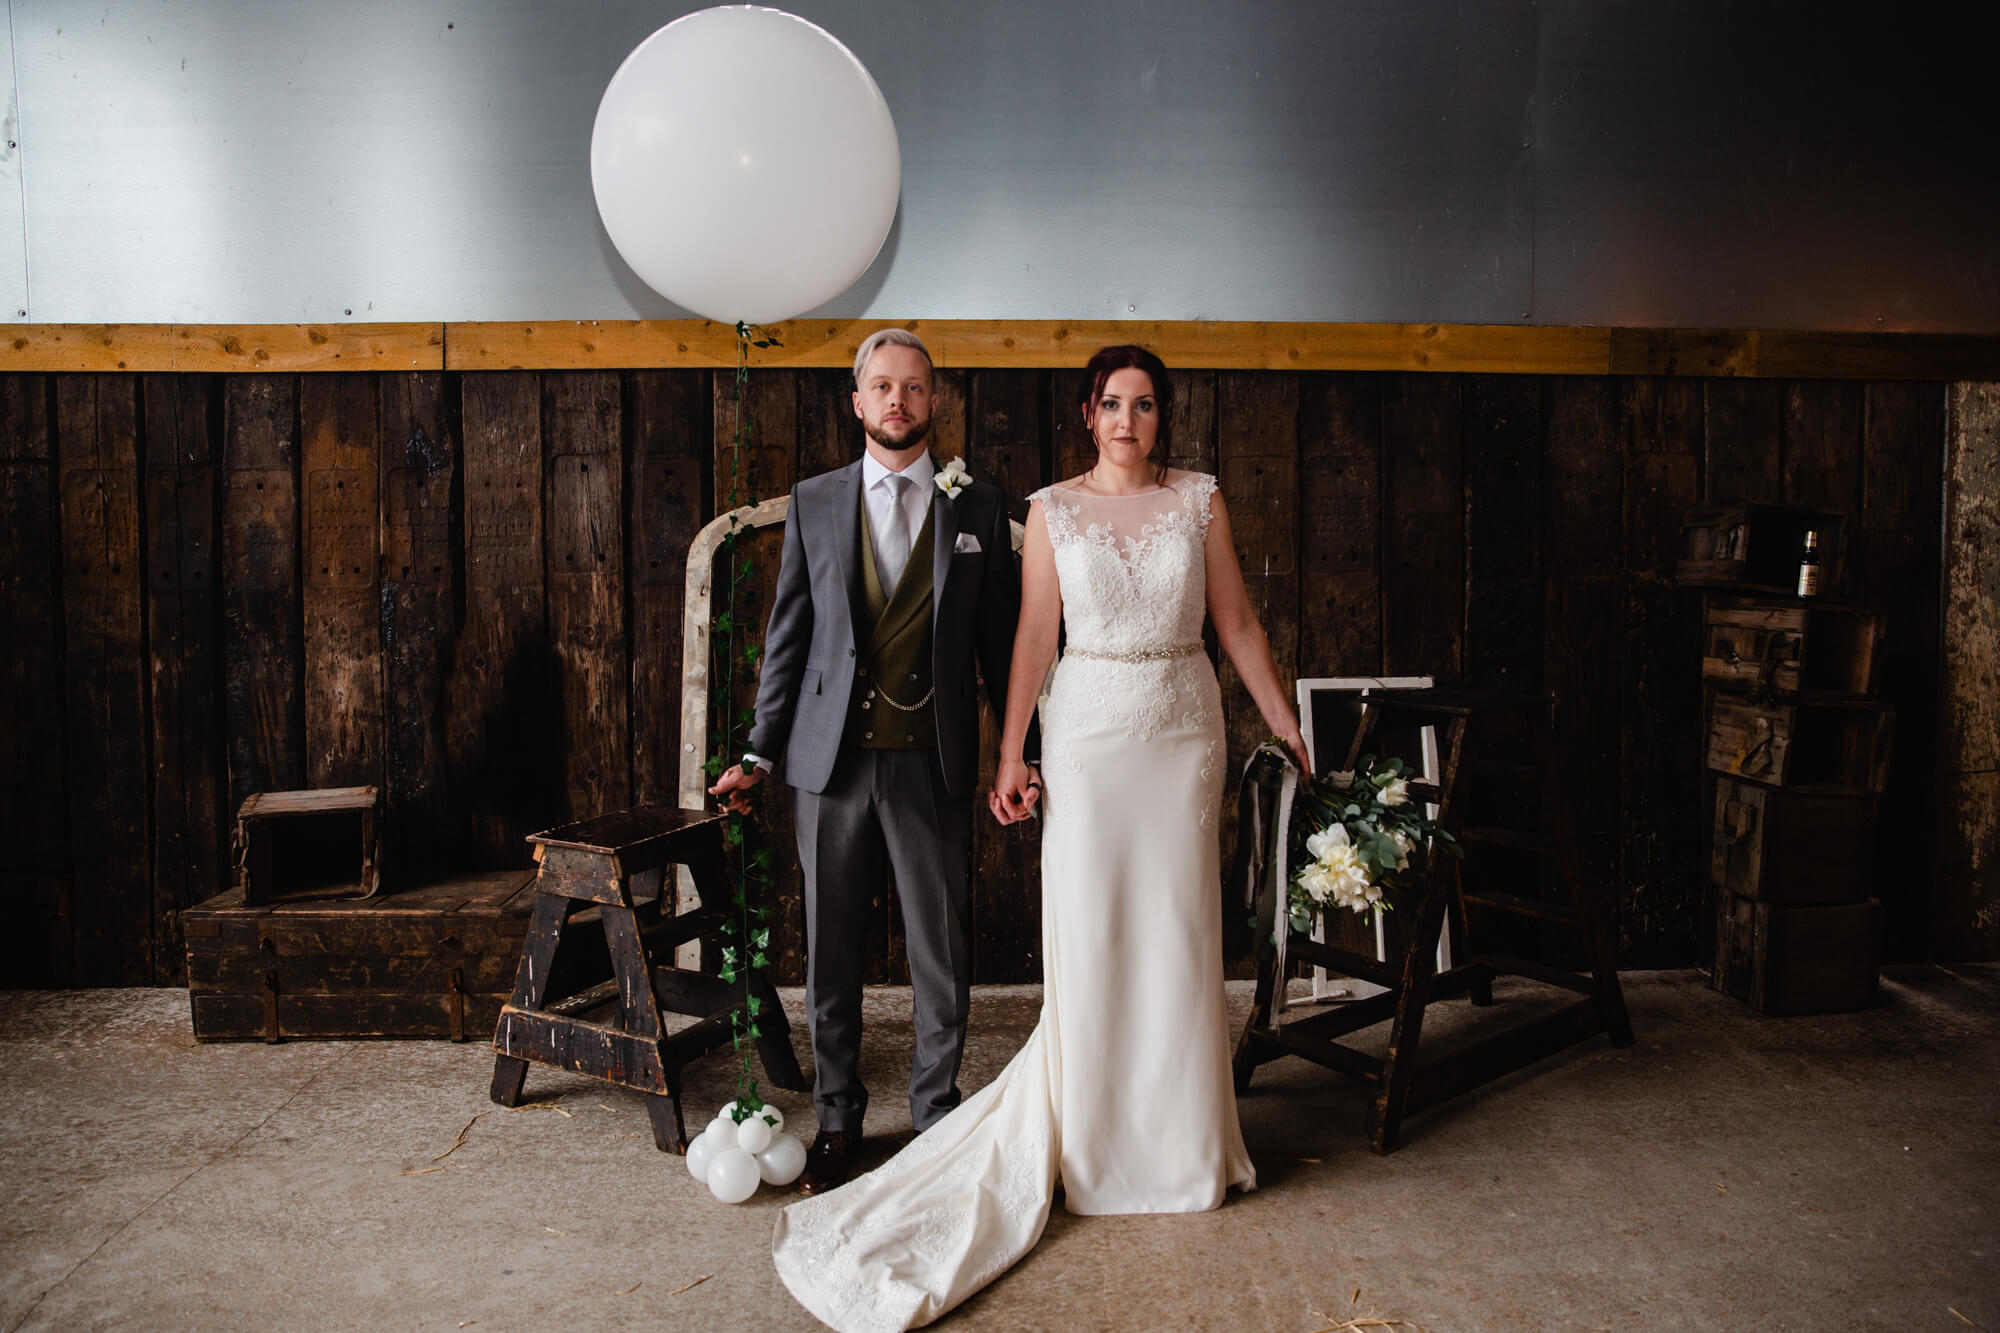 newlyweds pose looking at camera for portrait against barn wall backdrop